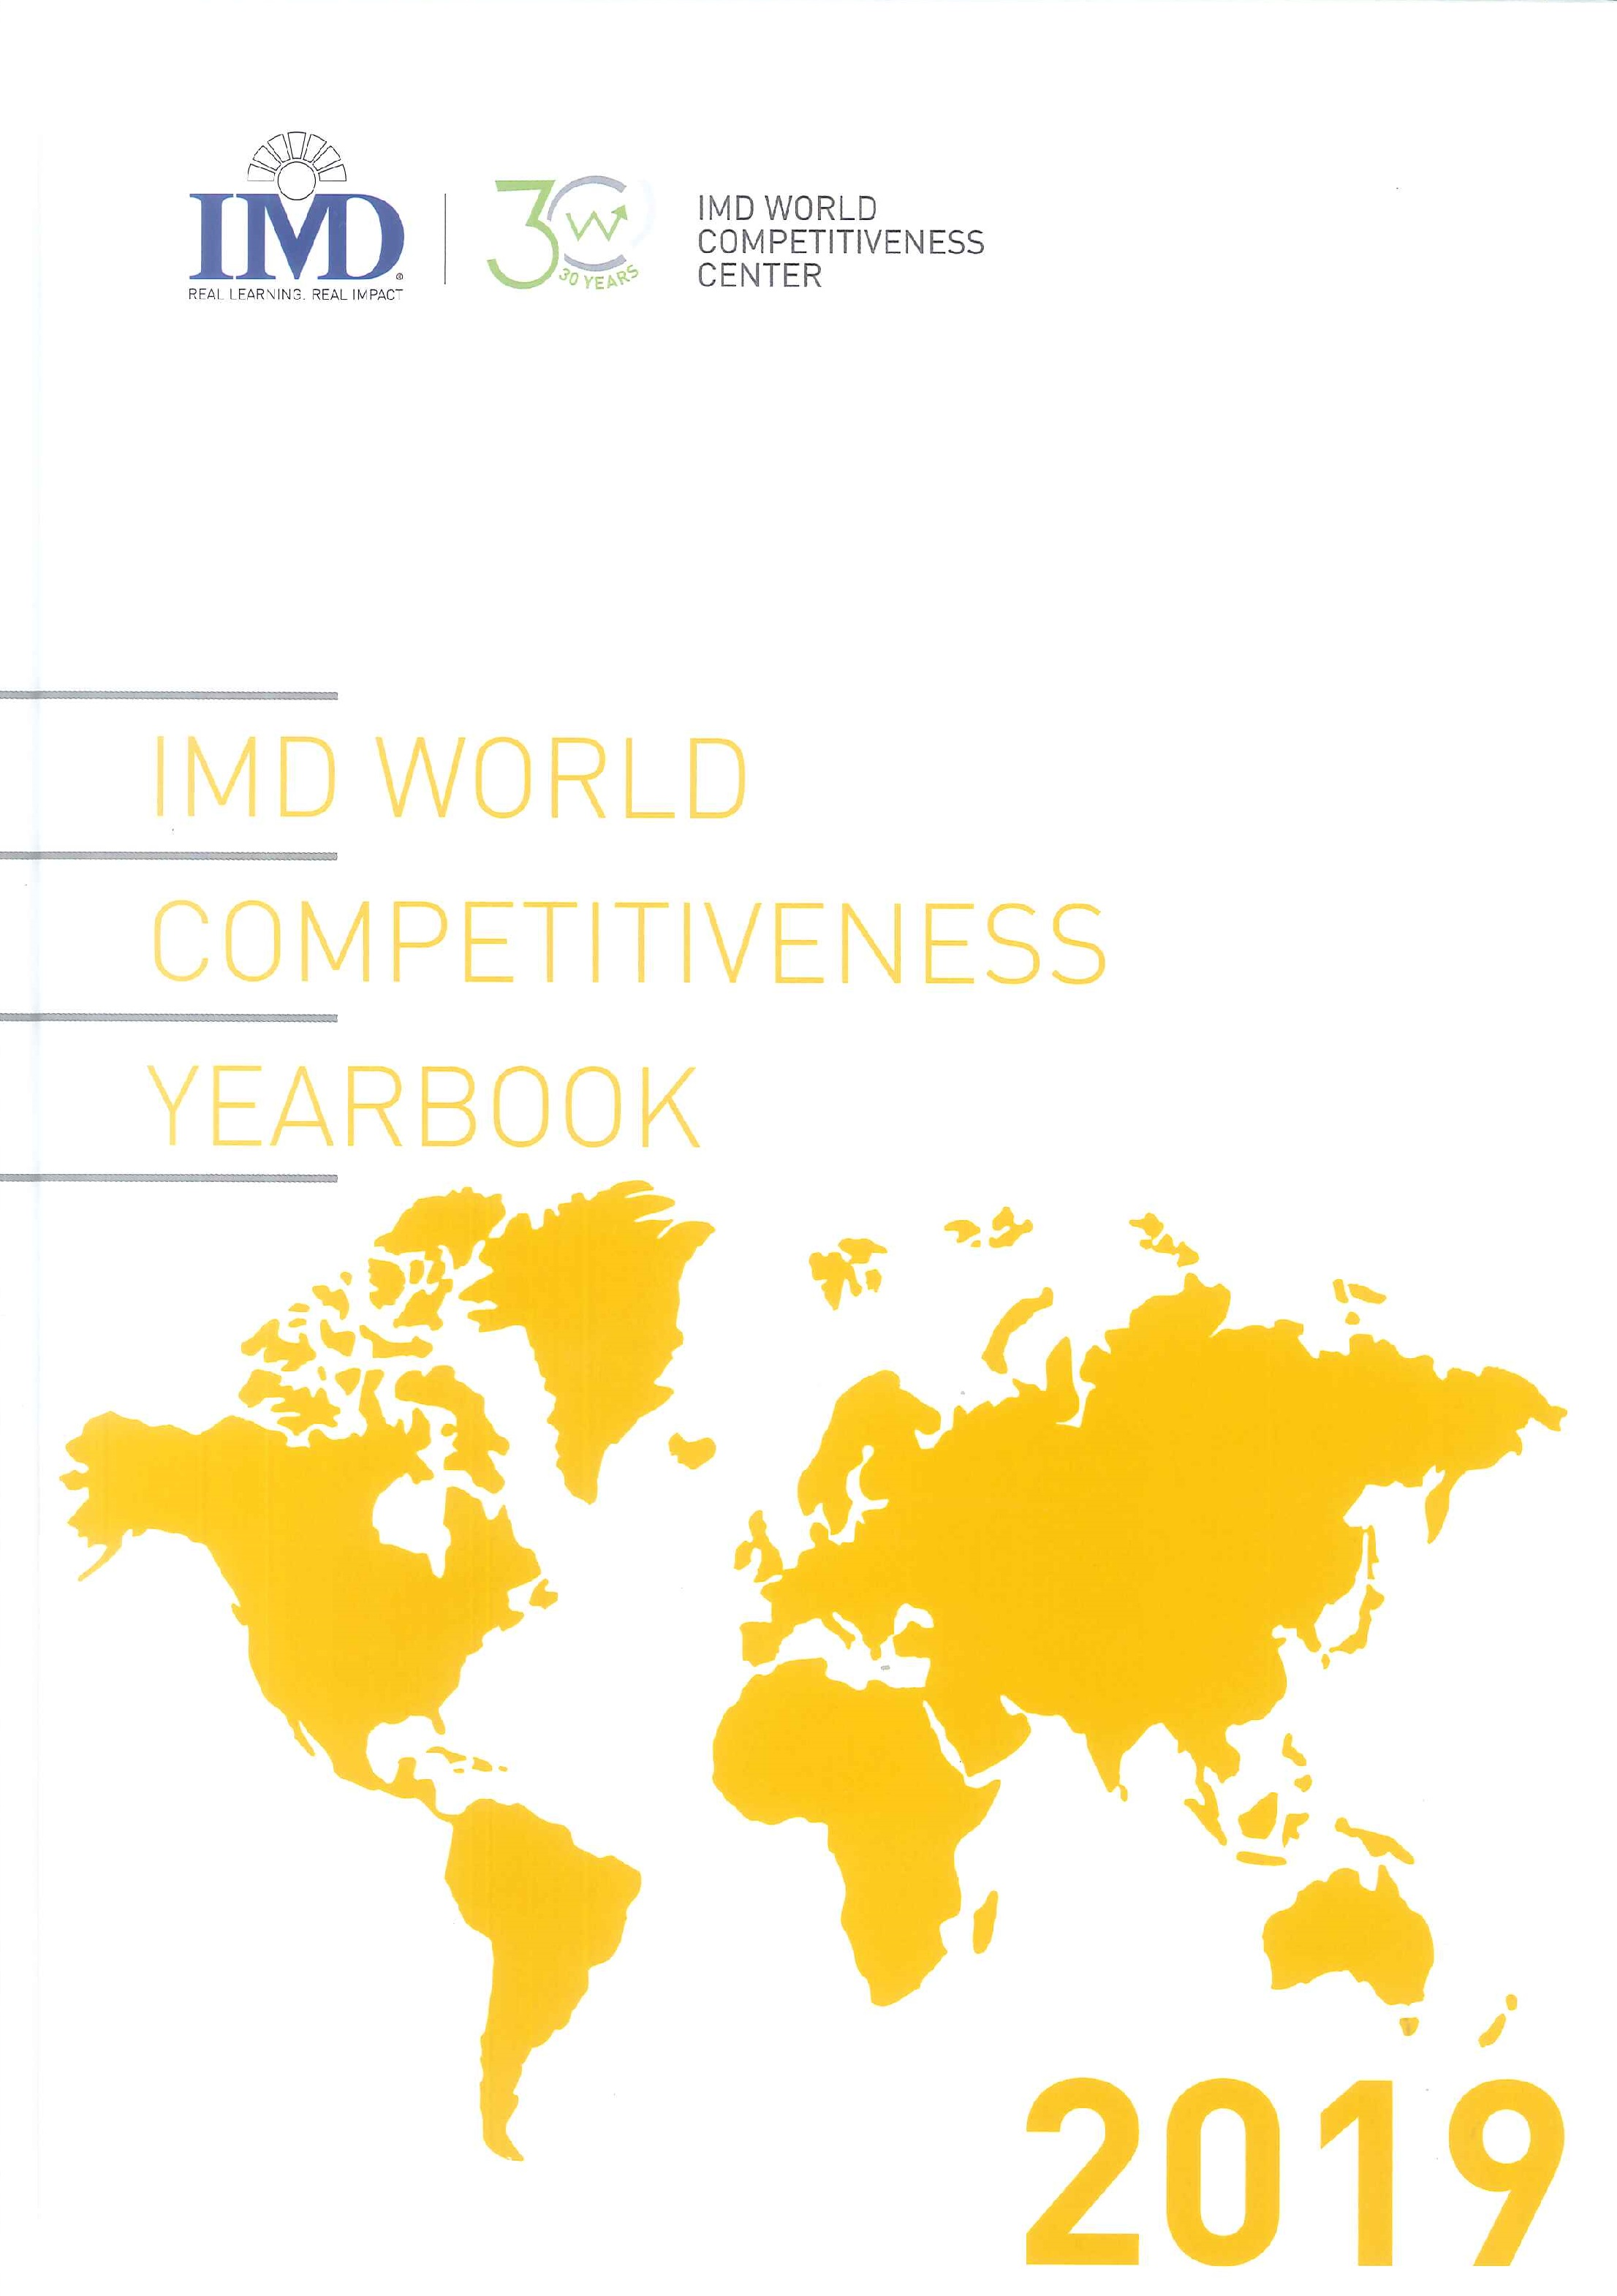 IMD world competitiveness yearbook